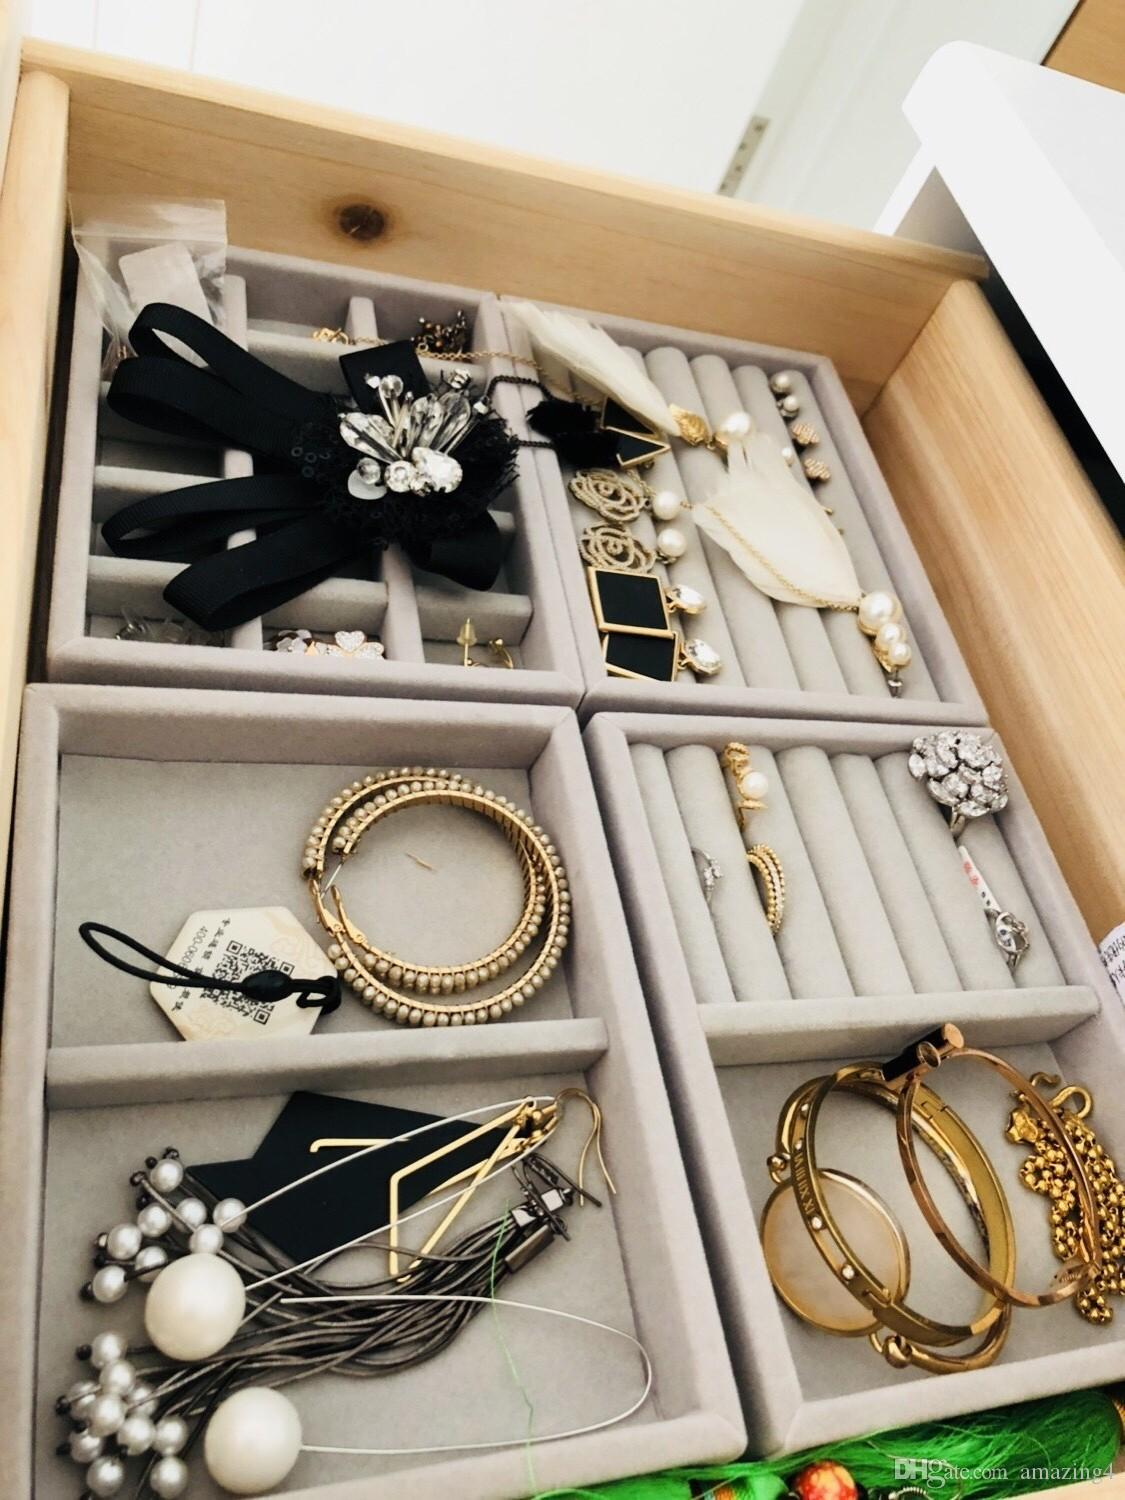 2020 Wholesale New Drawer Diy Jewelry Storage Tray Rings Bracelets Gift Box Jewellery Organizer Small Size Fit Most Room Space From Amazing4 27 41 Dhgate Com